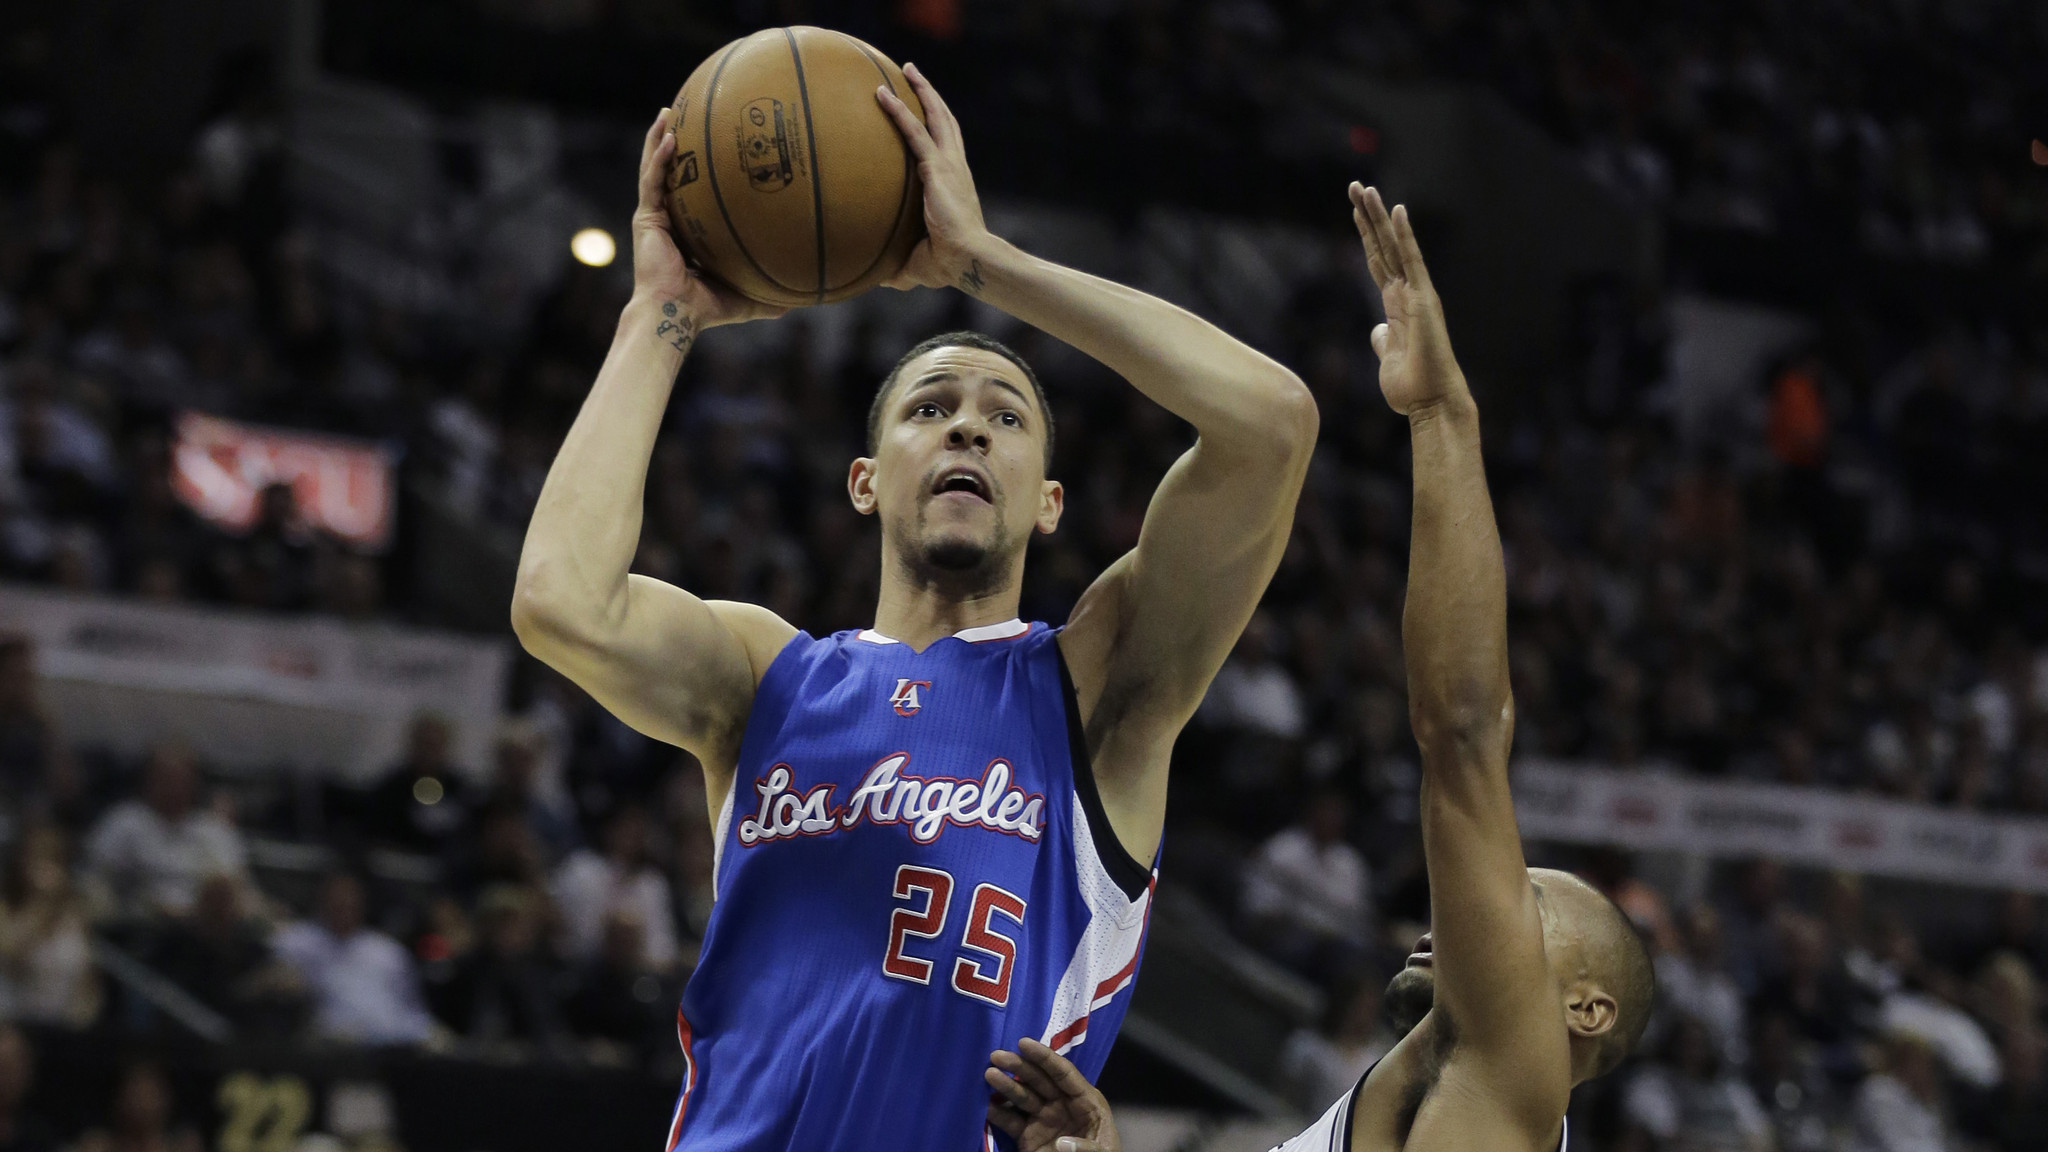 Austin Rivers steps up for Clippers' Game 4 victory with aggressive play